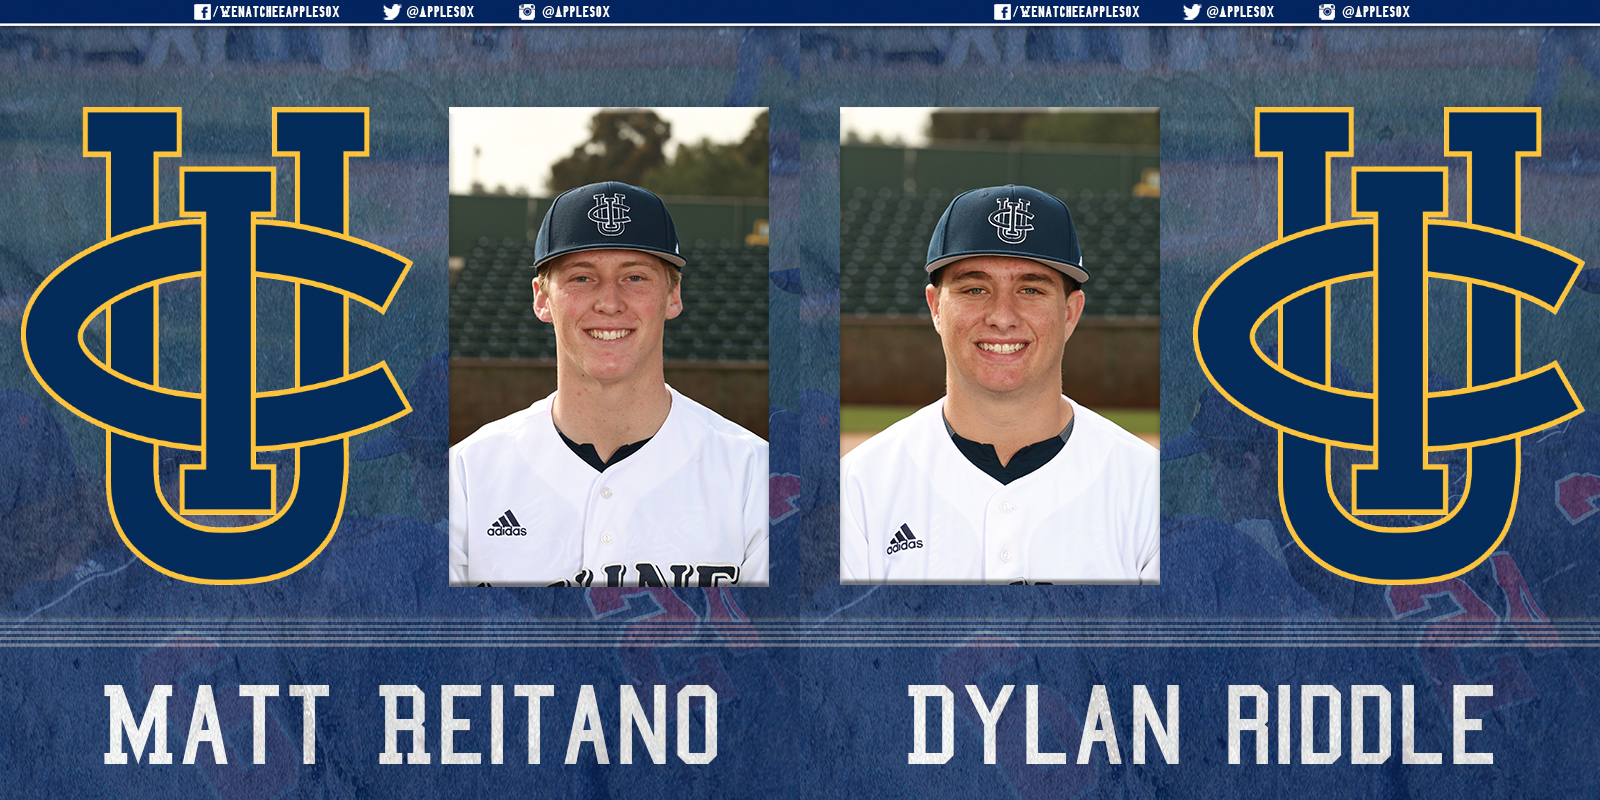 Two current UC Irvine Anteaters are set to wear an AppleSox uniform this summer. Pictured above are the AppleSox newest additions,left-handed pitcher Dylan Riddle and catcher Matt Reitano.